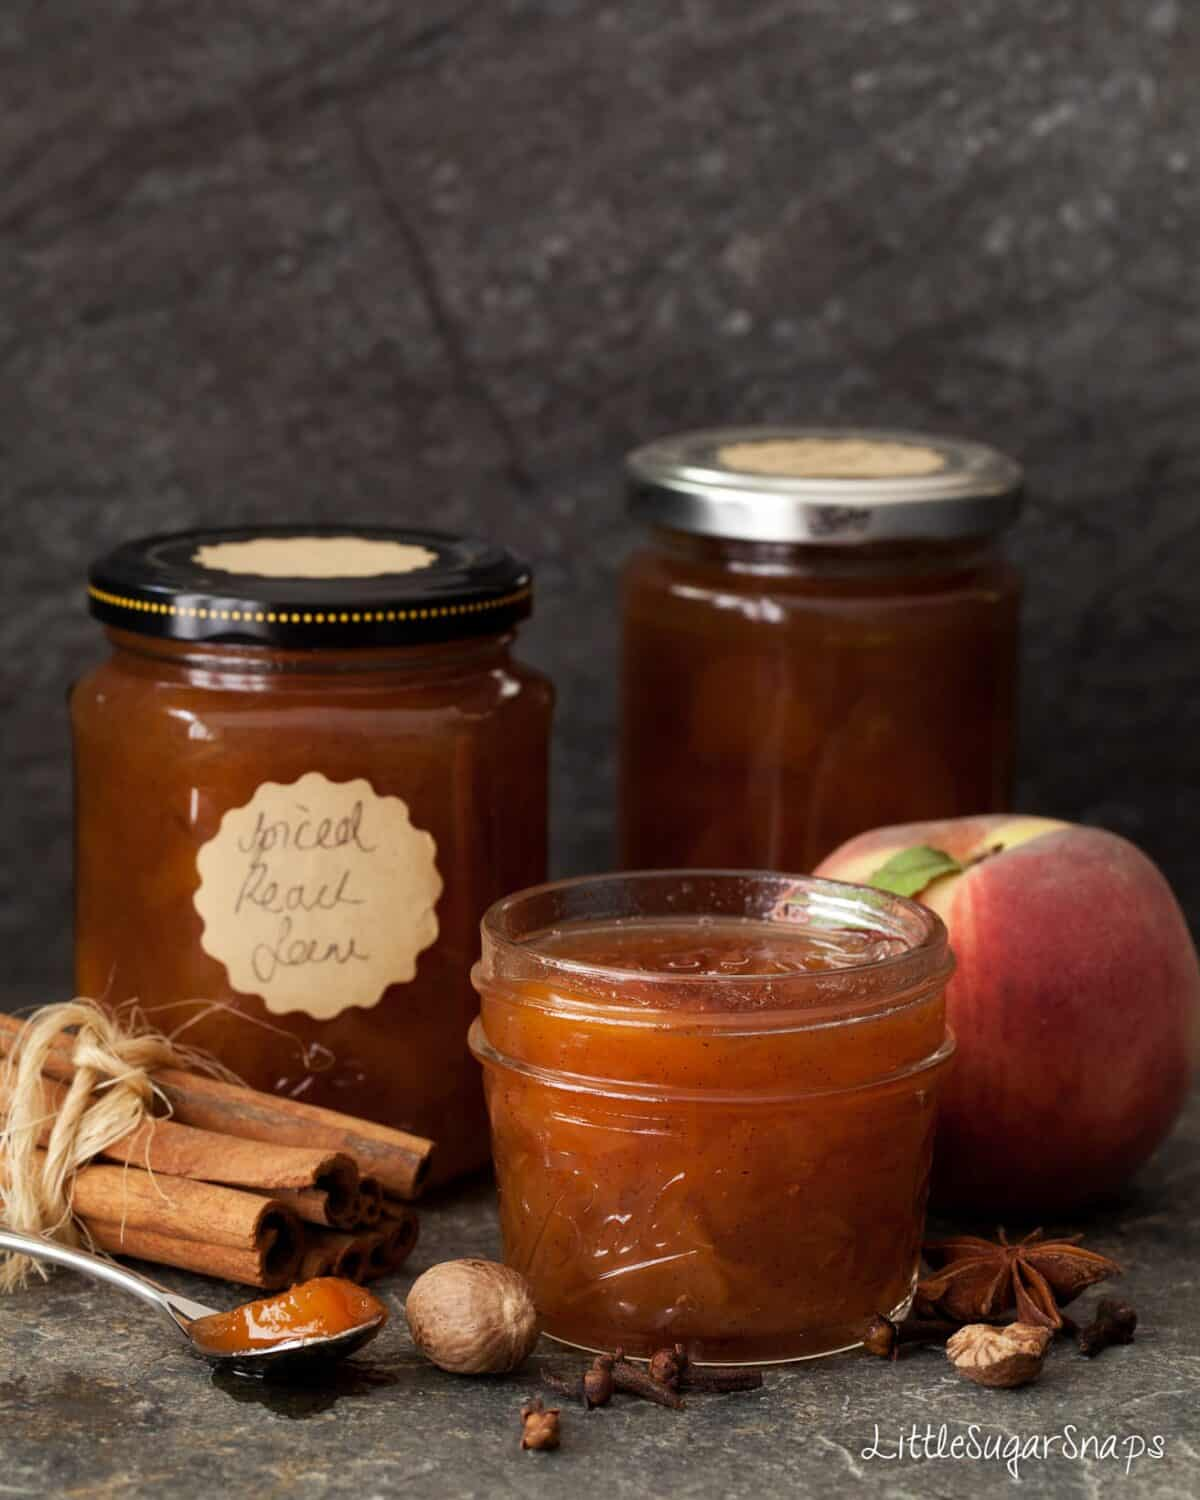 Spiced Peach Jam with ingredients alongside: peaches, cinnamon, anise, clove and nutmeg.